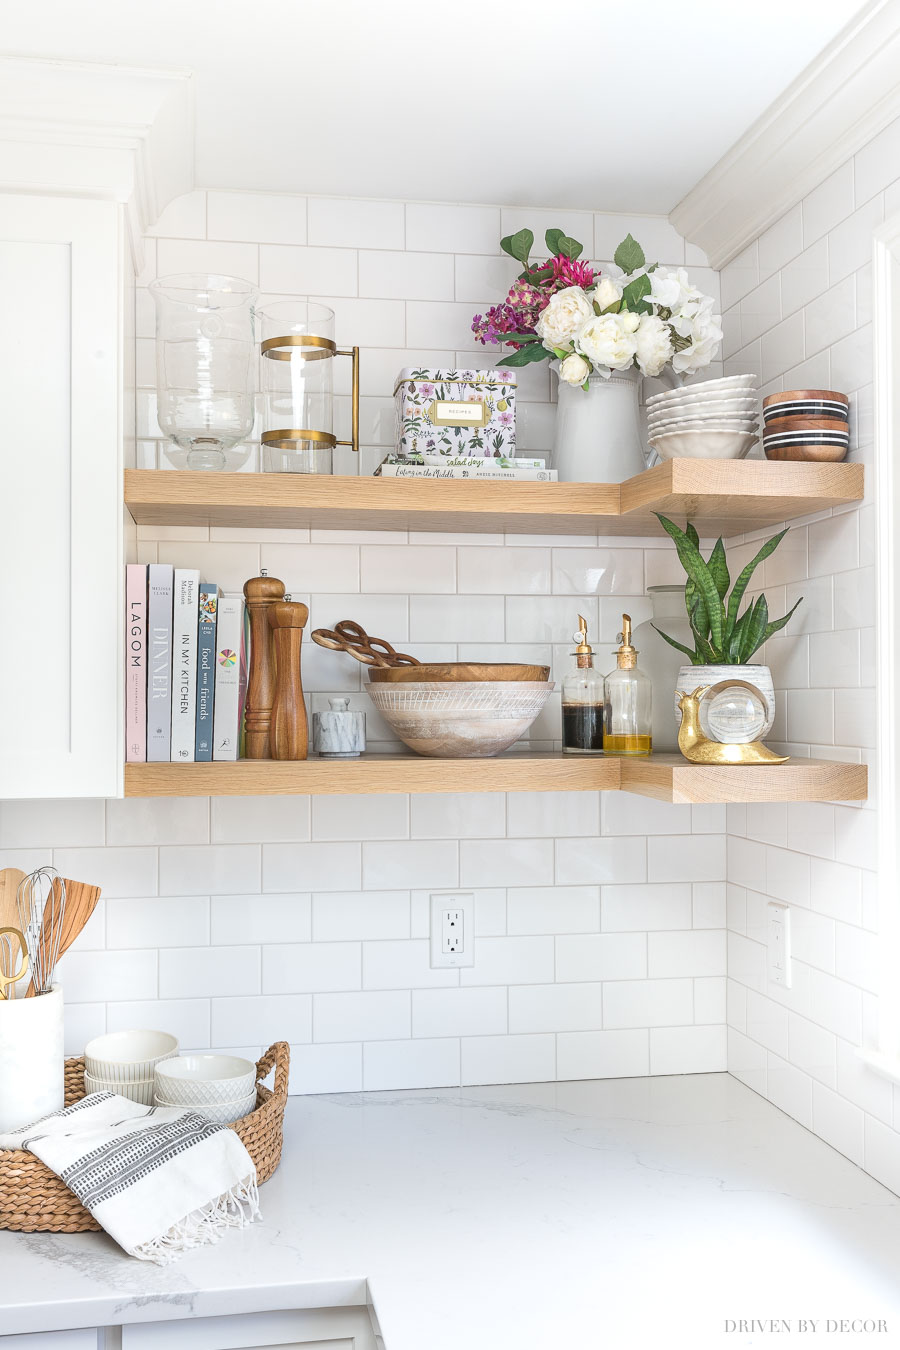 Diy Floating Corner Shelves In Our Kitchen All The Details